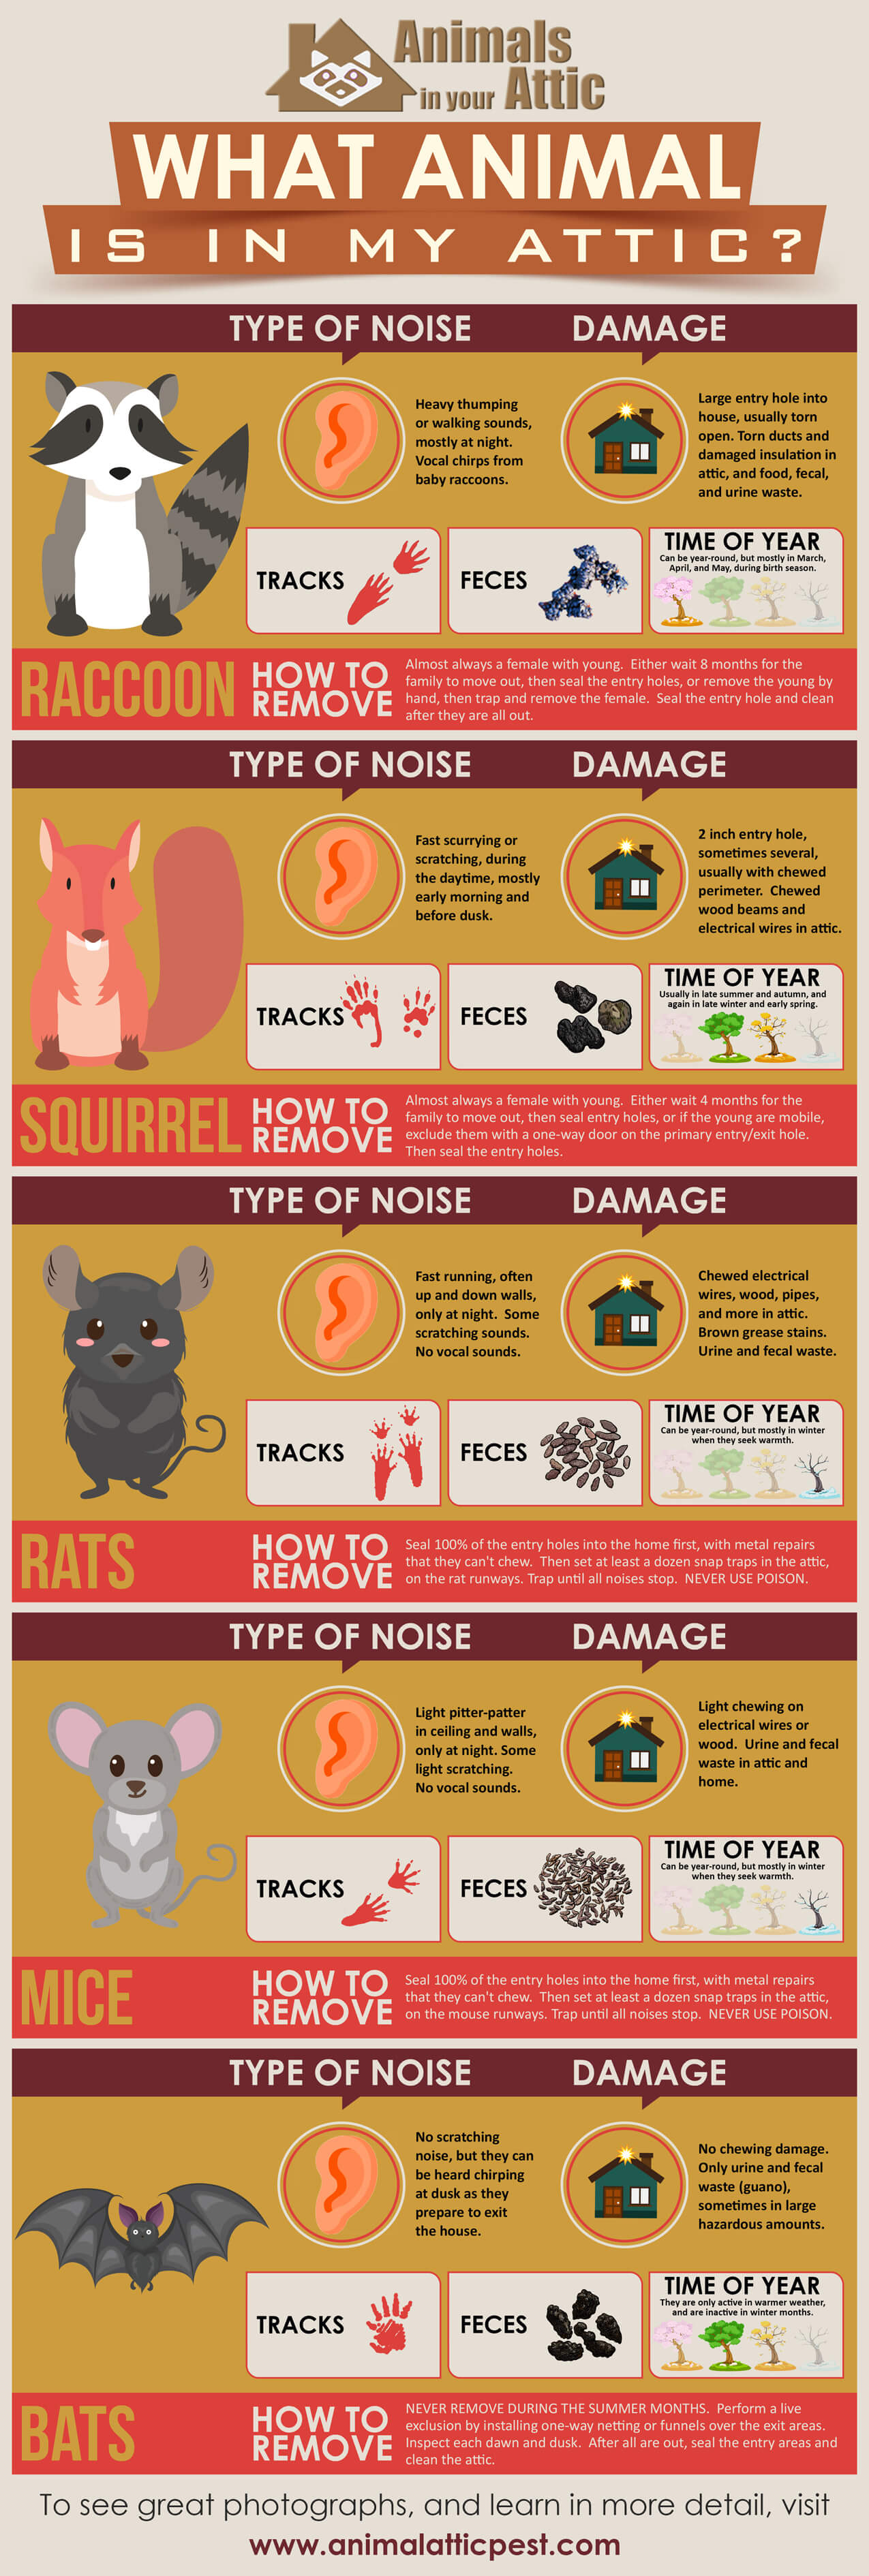 WHAT_ANIMAL_IS_IN_MY_ATTIC_infographic